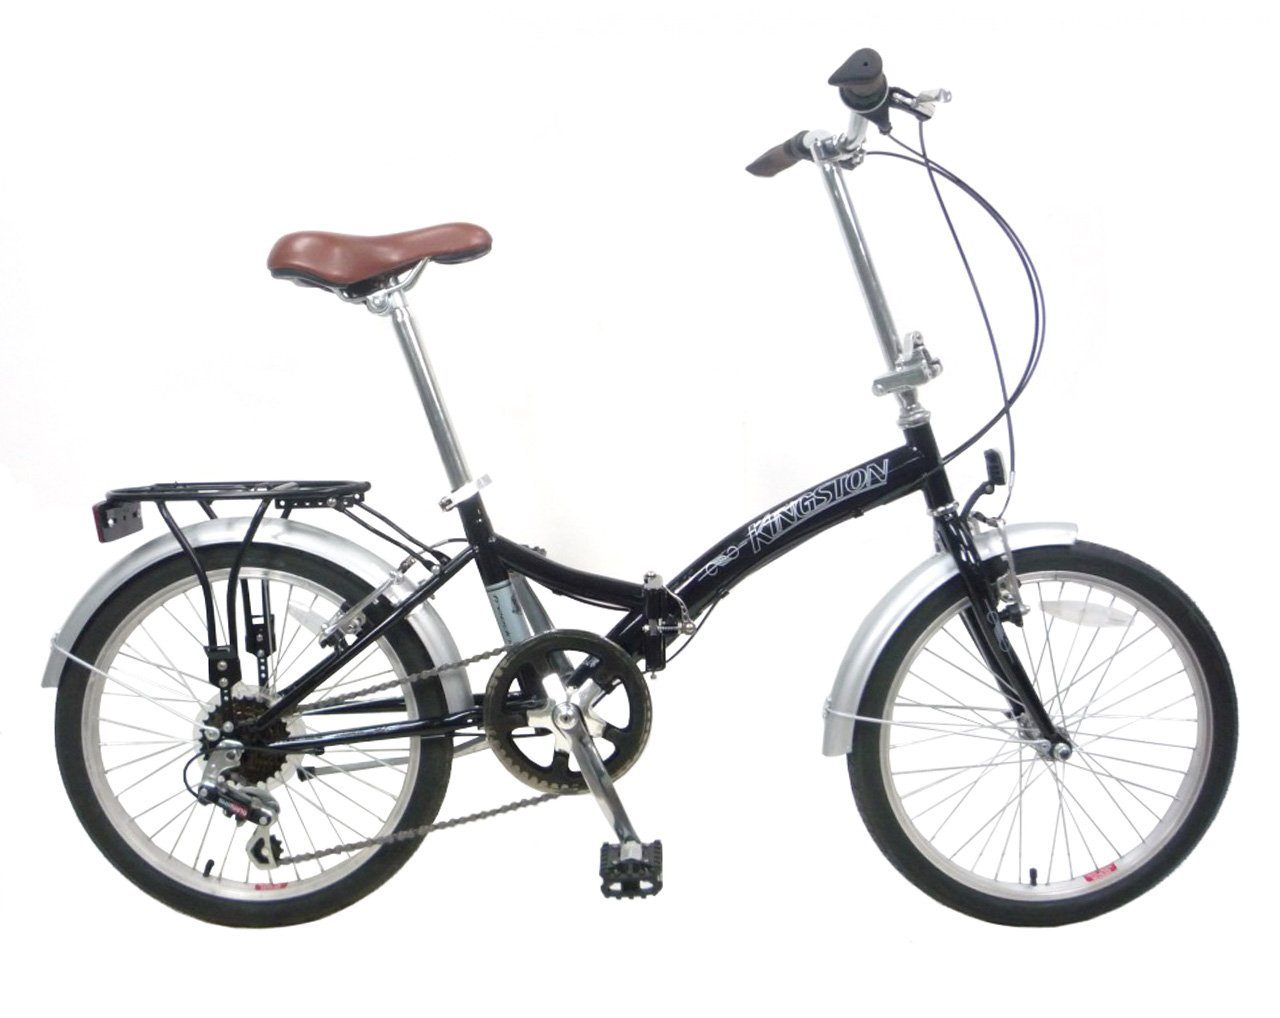 Kingston freedom folding bicicleta negro